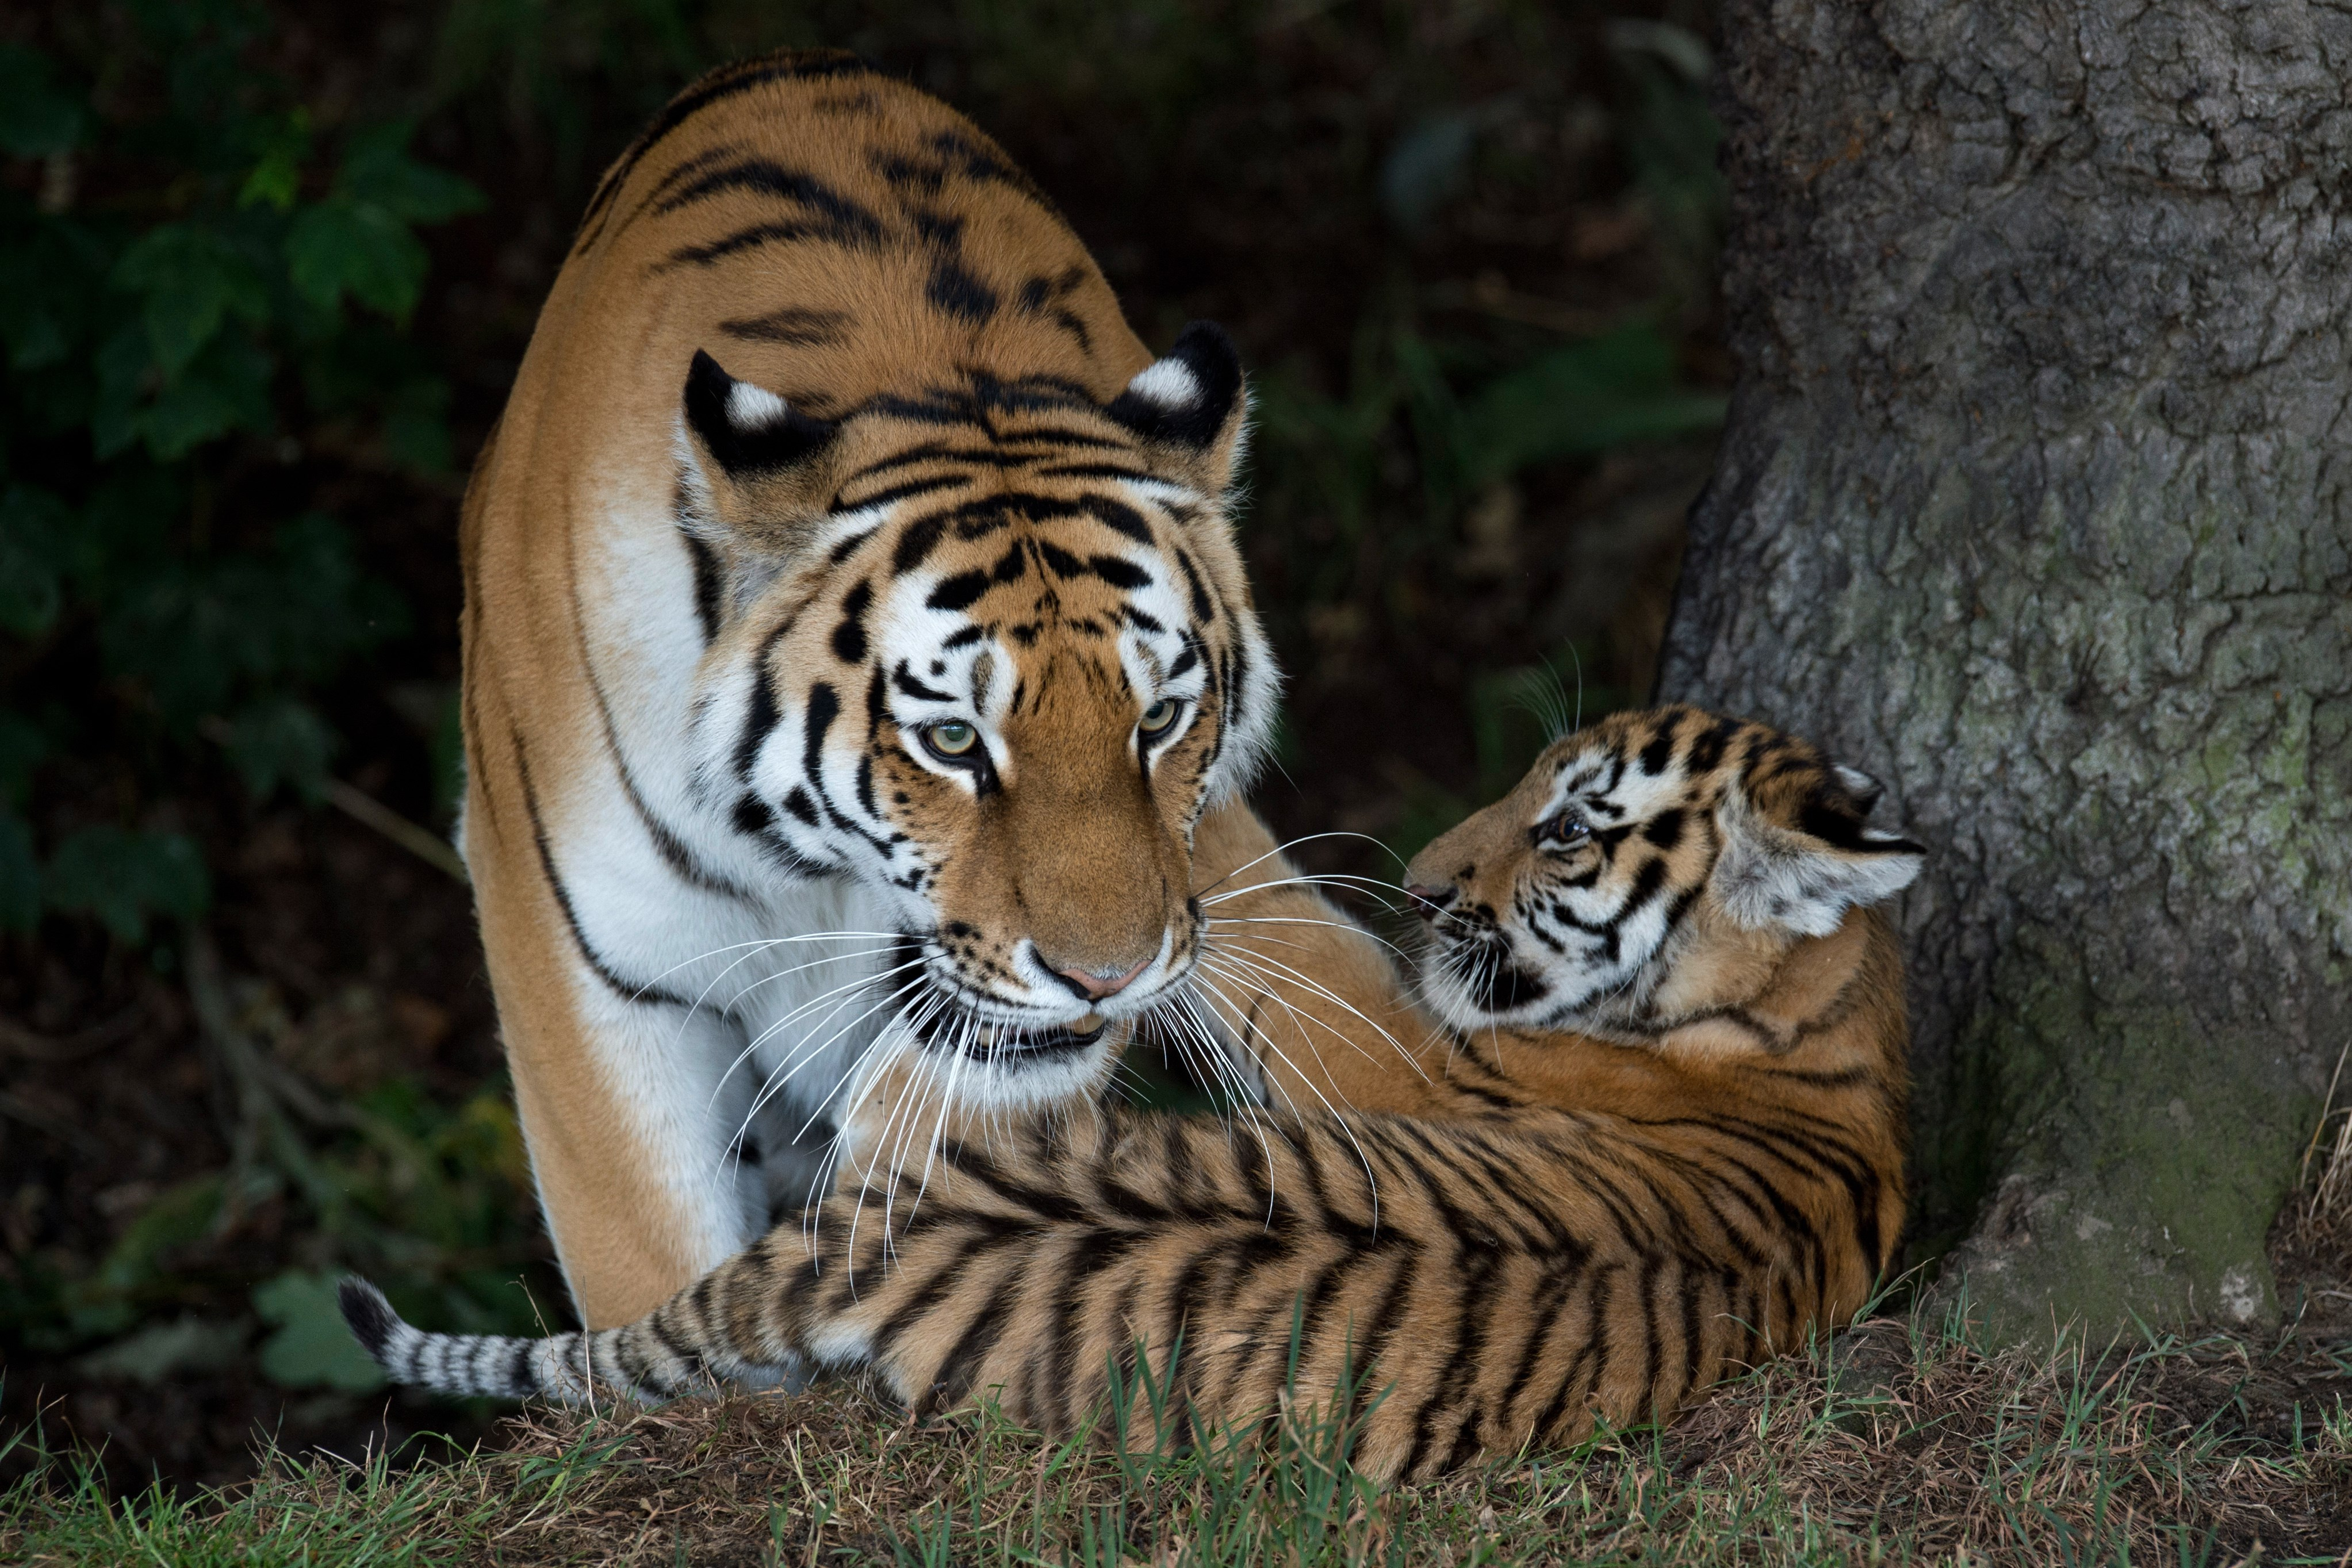 A rare Amur Tiger cub, aged four months, plays with its mother Tschuna as it experiences its reserve for the first time at the Yorkshire Wildlife Park near Doncaster, northern England on July 29, 2015.